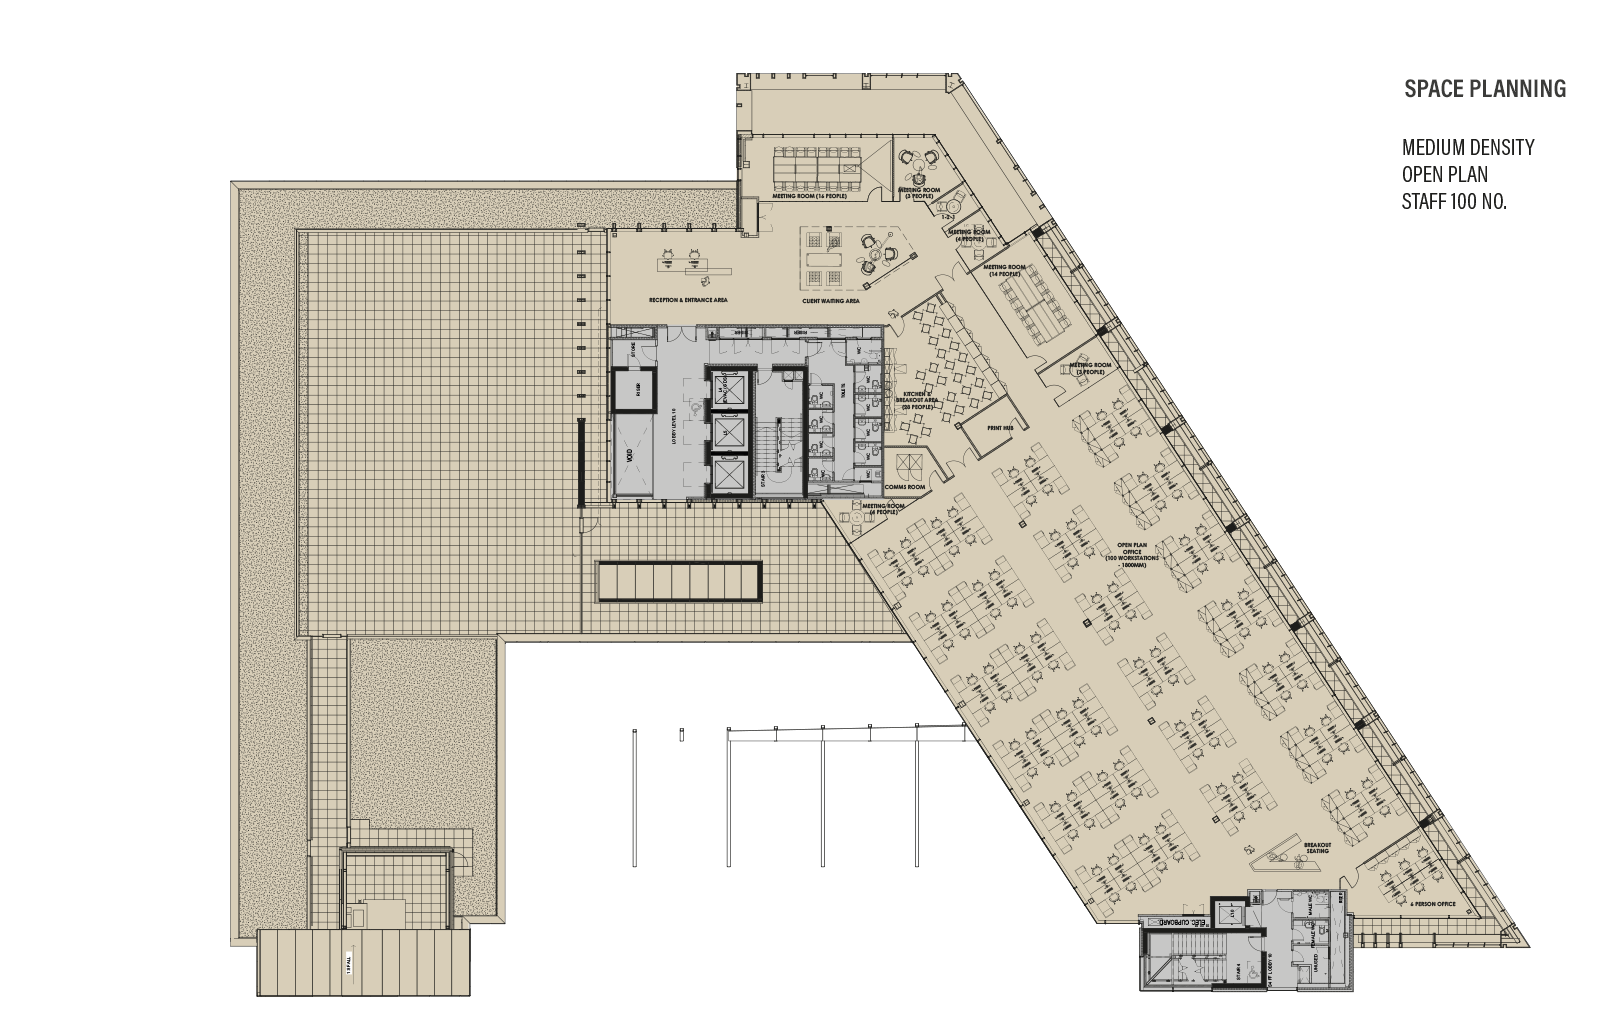 Ninth Floor Plan - Space Planning Medium